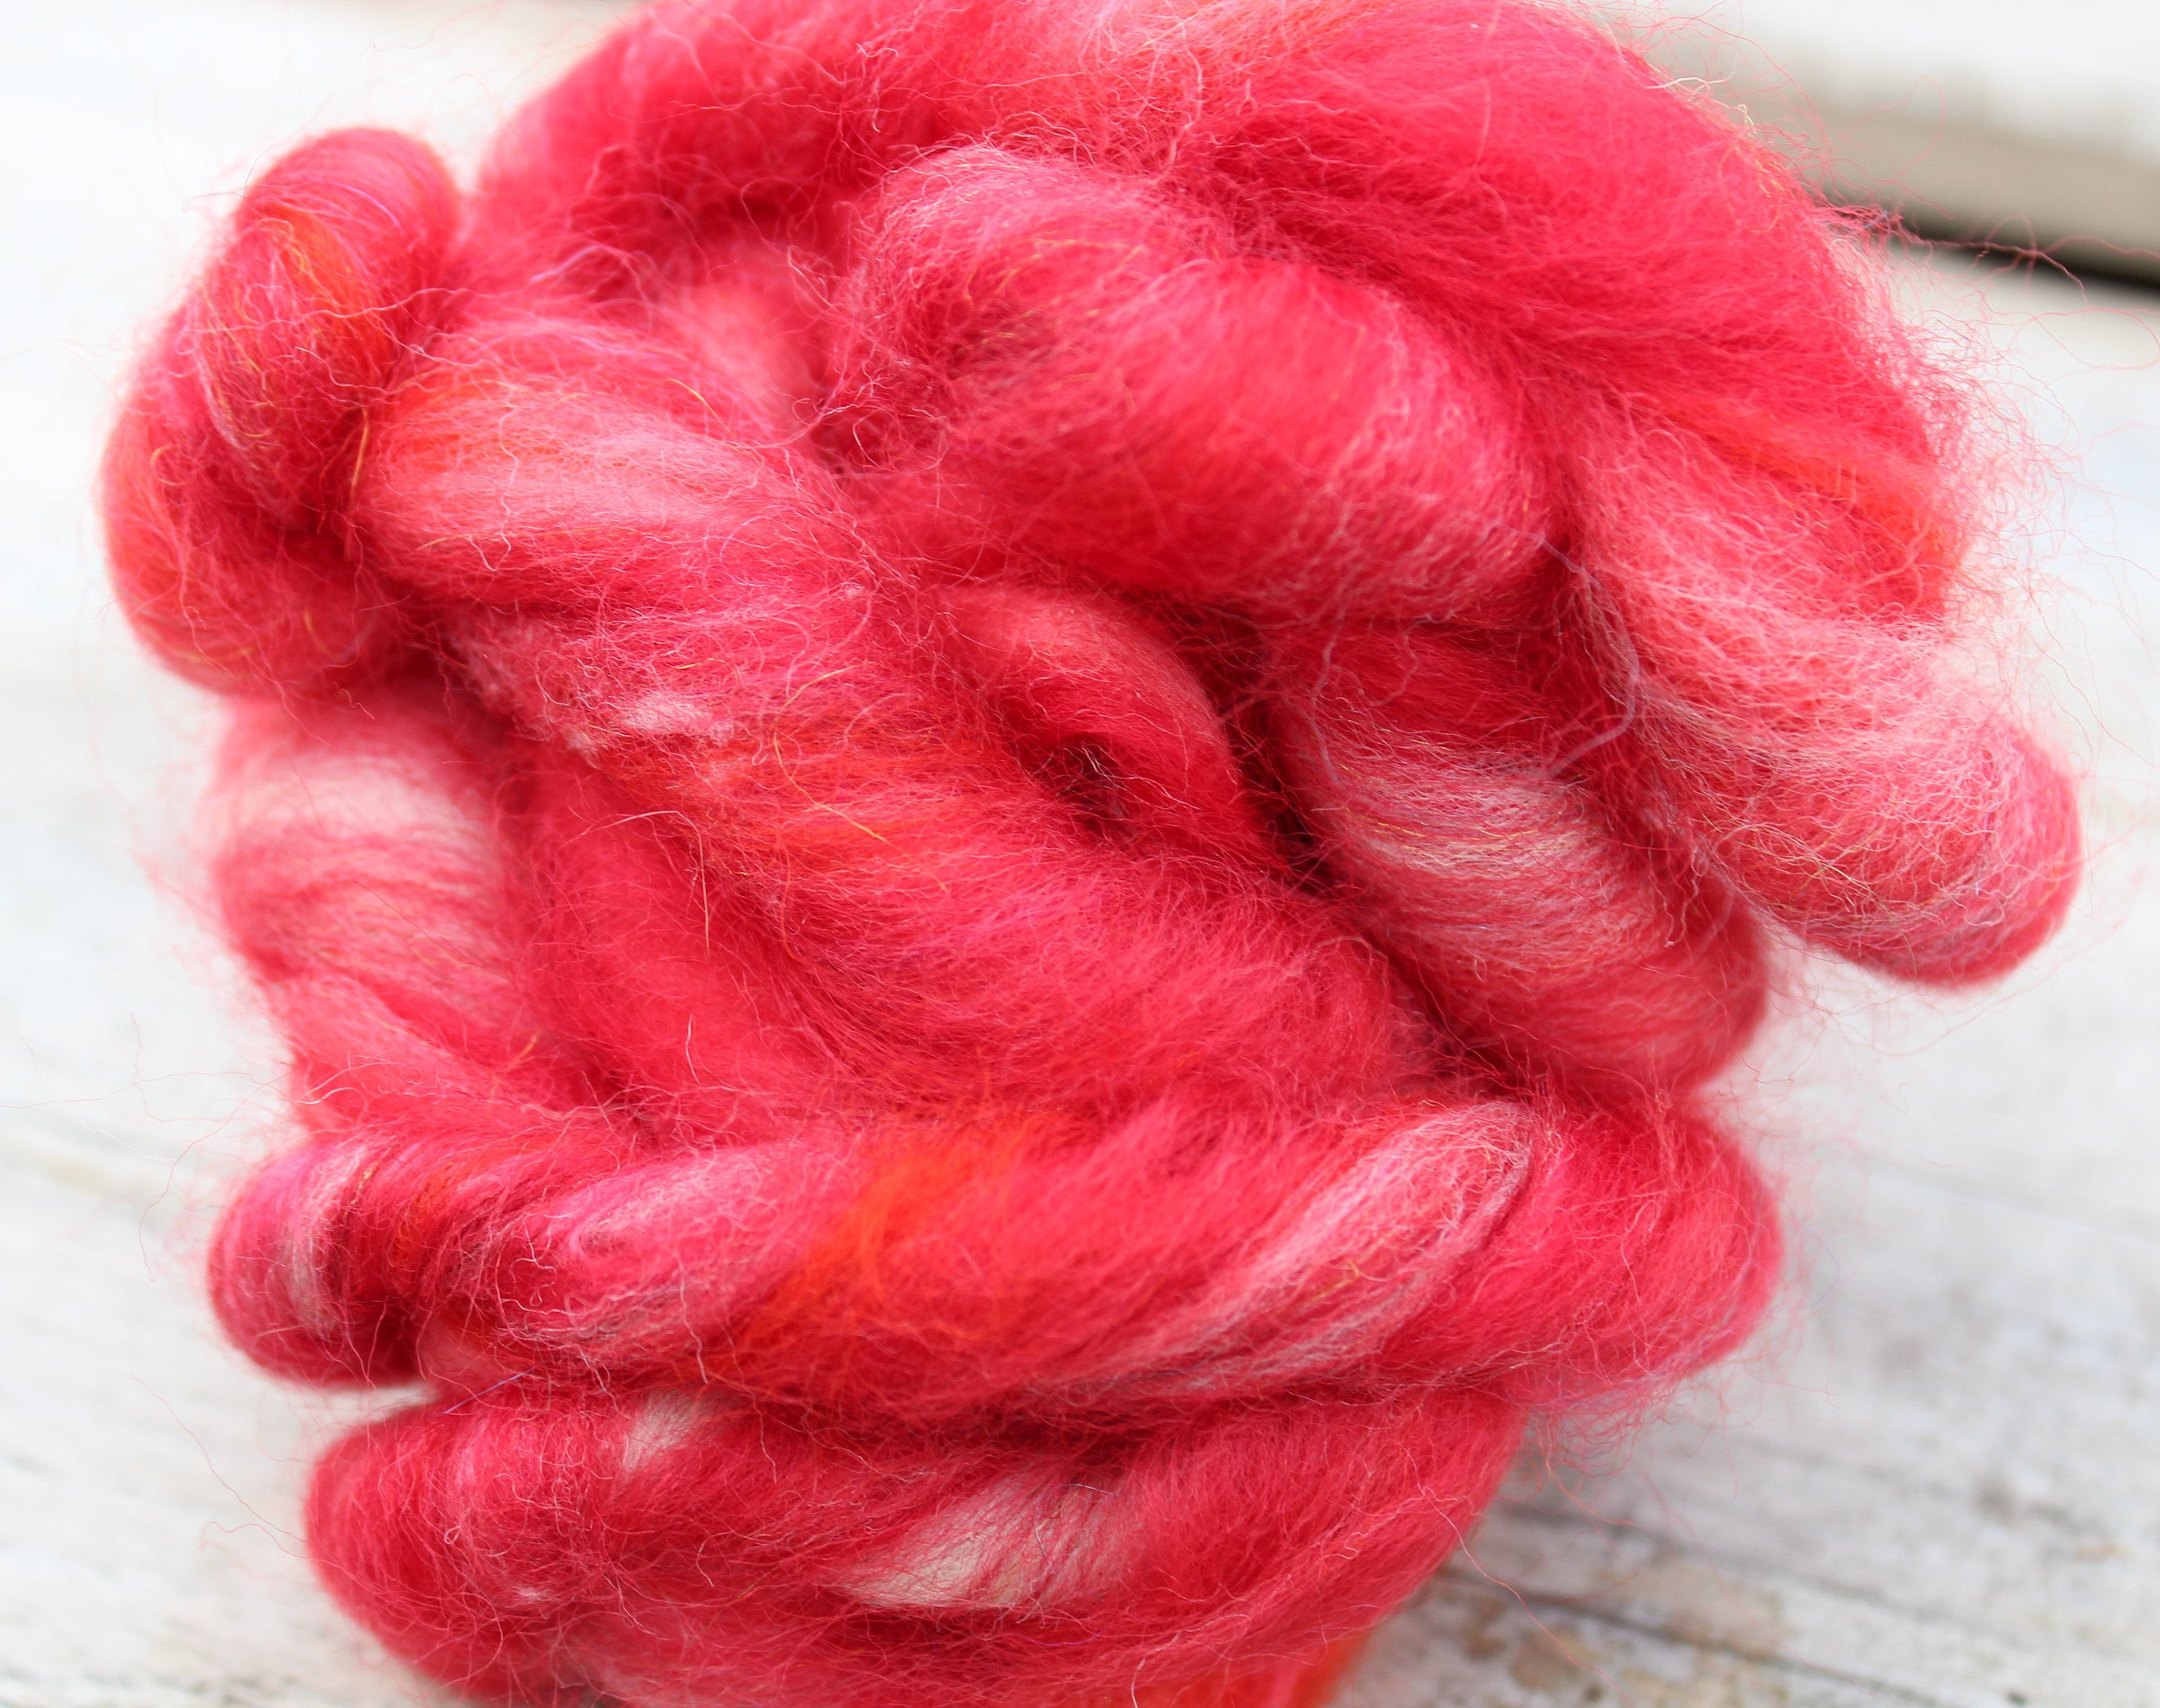 Red roving,red wool,mixed wool,carded wool,dread wool,spinning wool,felting wool,wet felting supplies,needle felting supplies,red felting